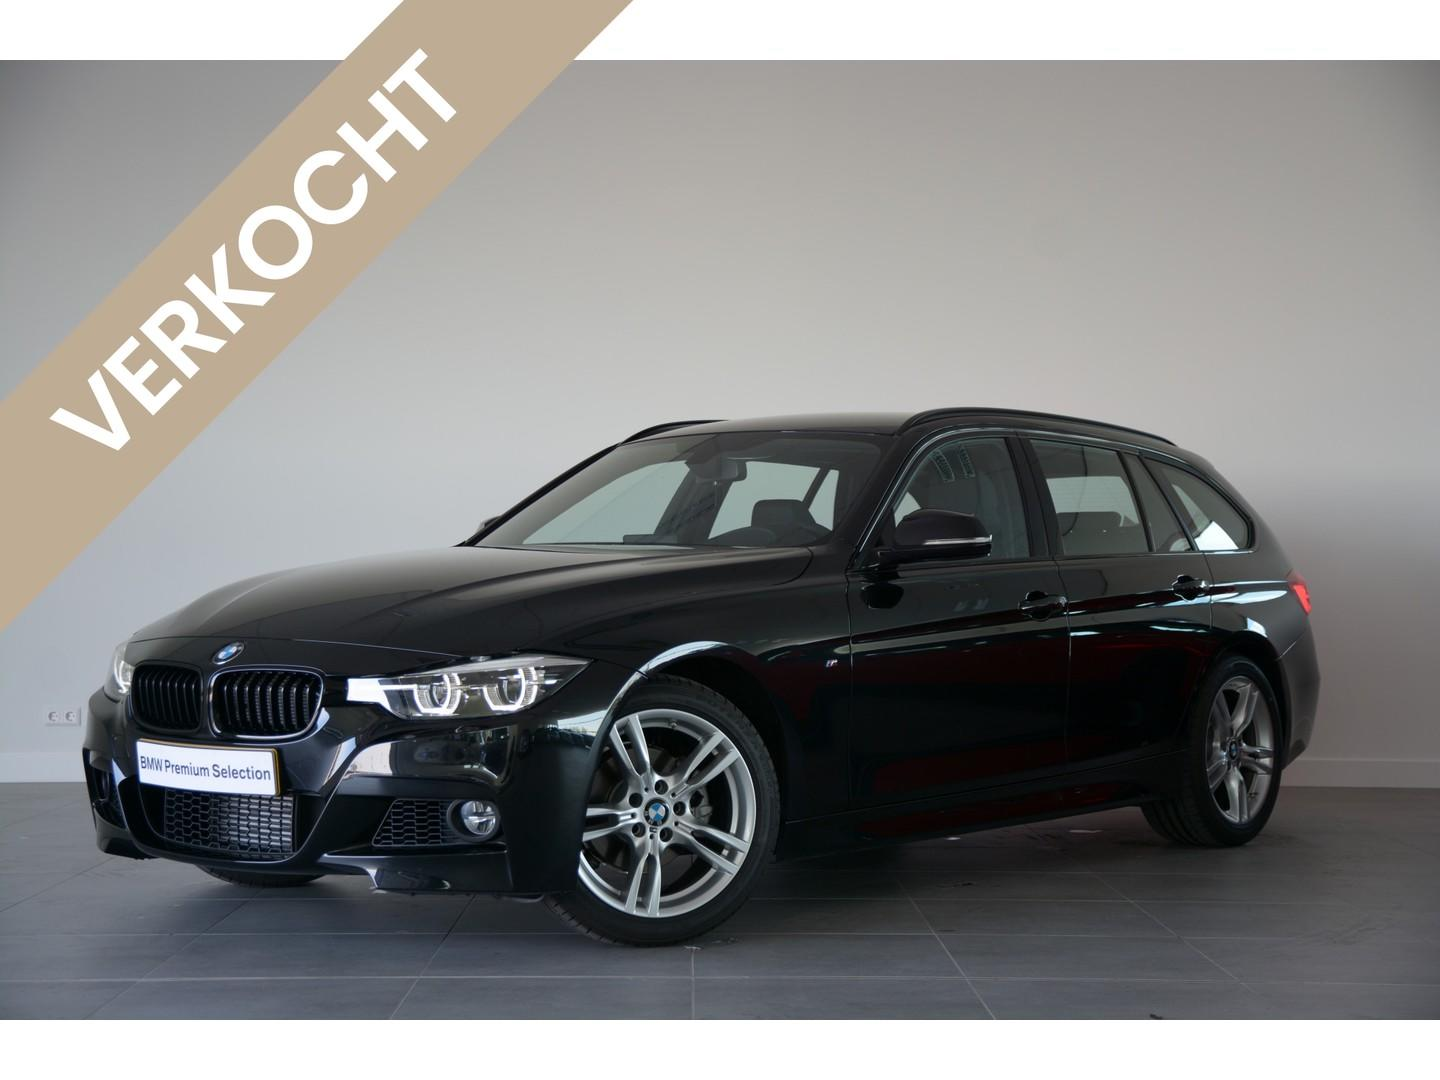 Bmw 3 serie Touring 318i executive edition m sport shadow aut.